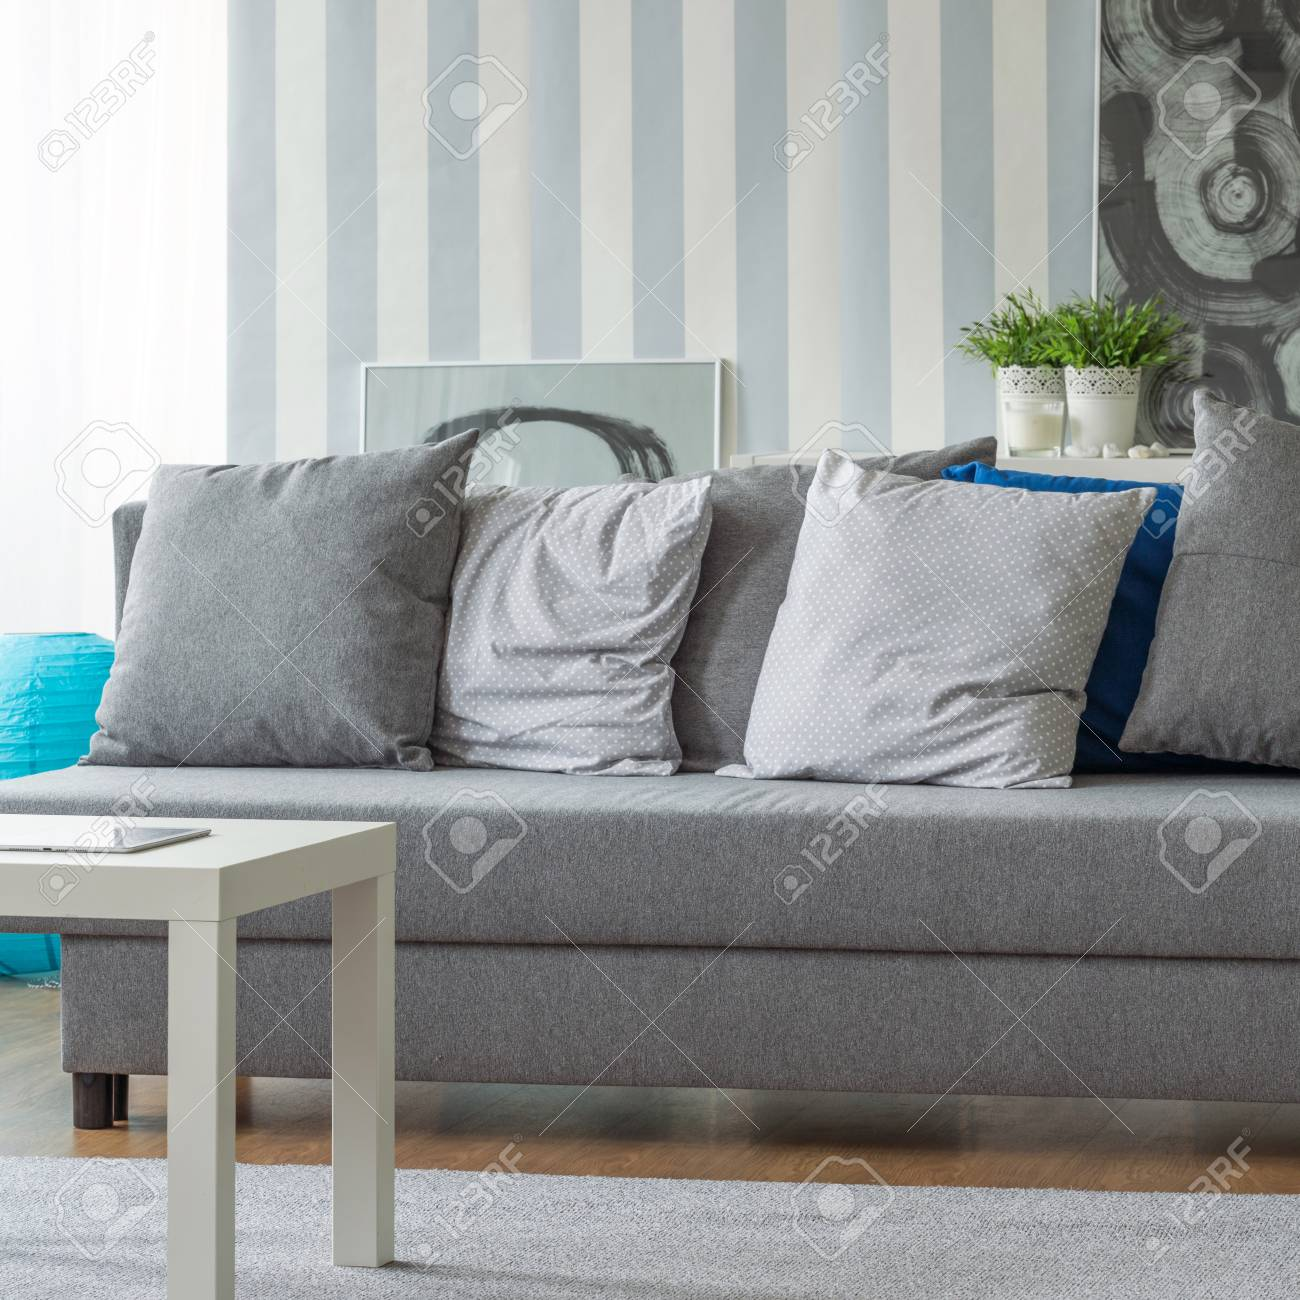 Phenomenal Picture Of Grey Sofa With Small Decorative Pillows Inzonedesignstudio Interior Chair Design Inzonedesignstudiocom